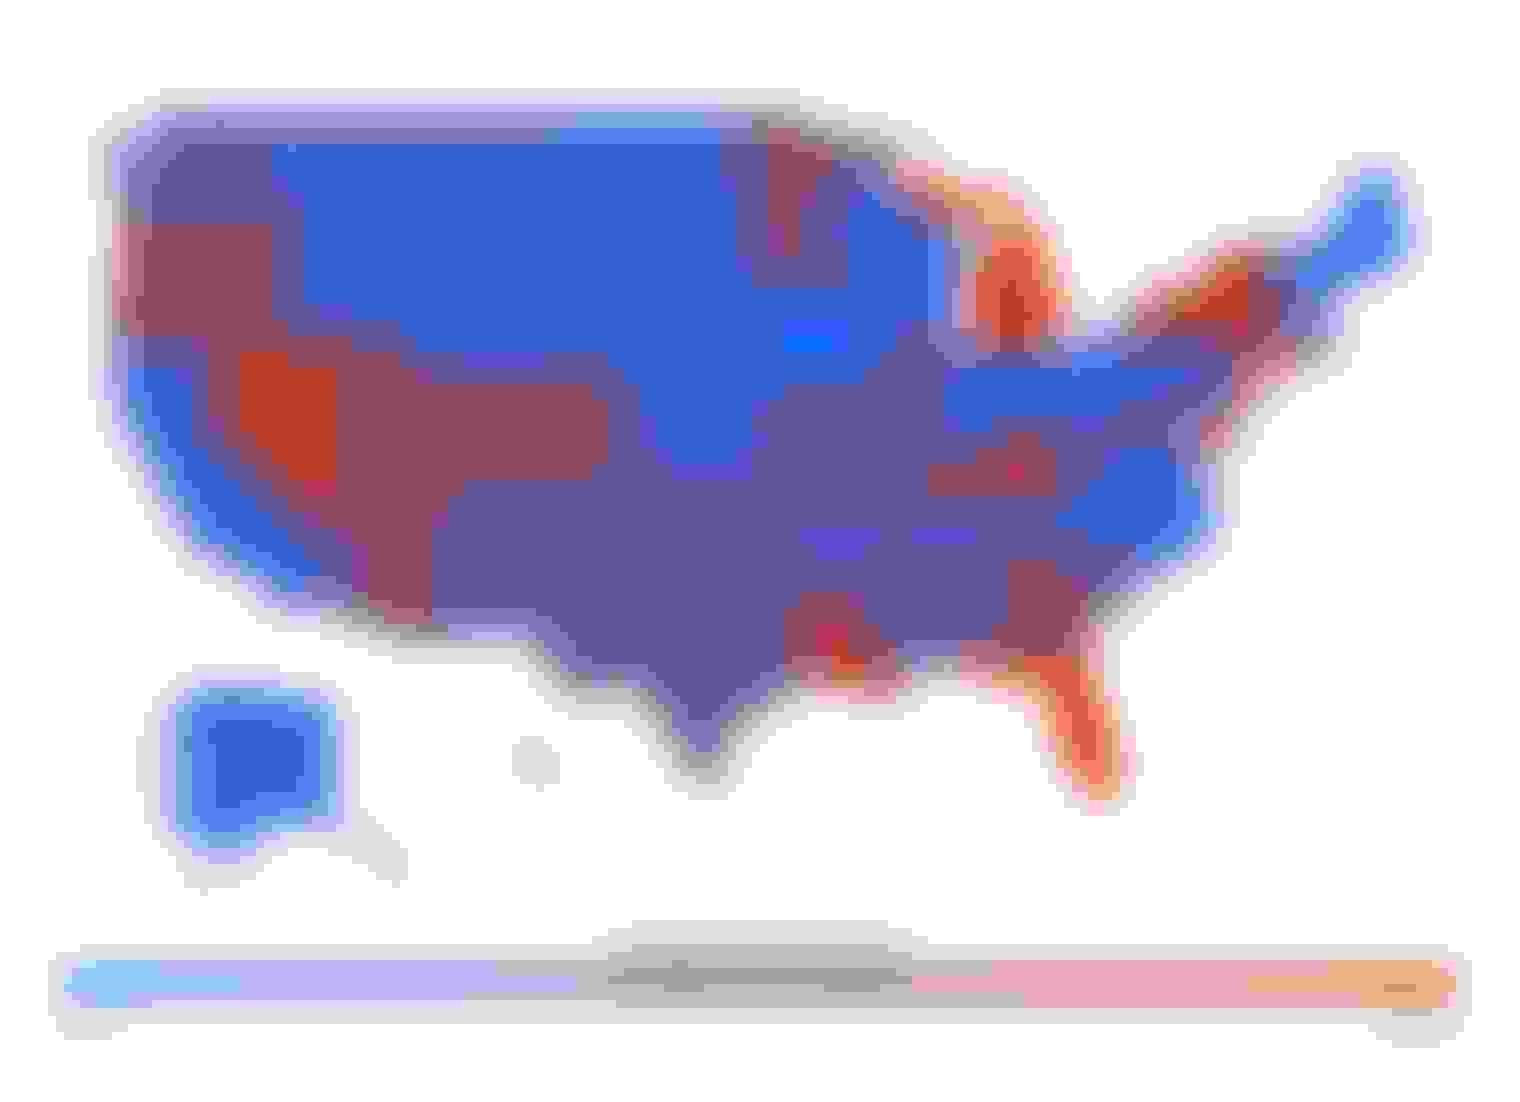 Heatmap of U.S. auto insurance rates by state